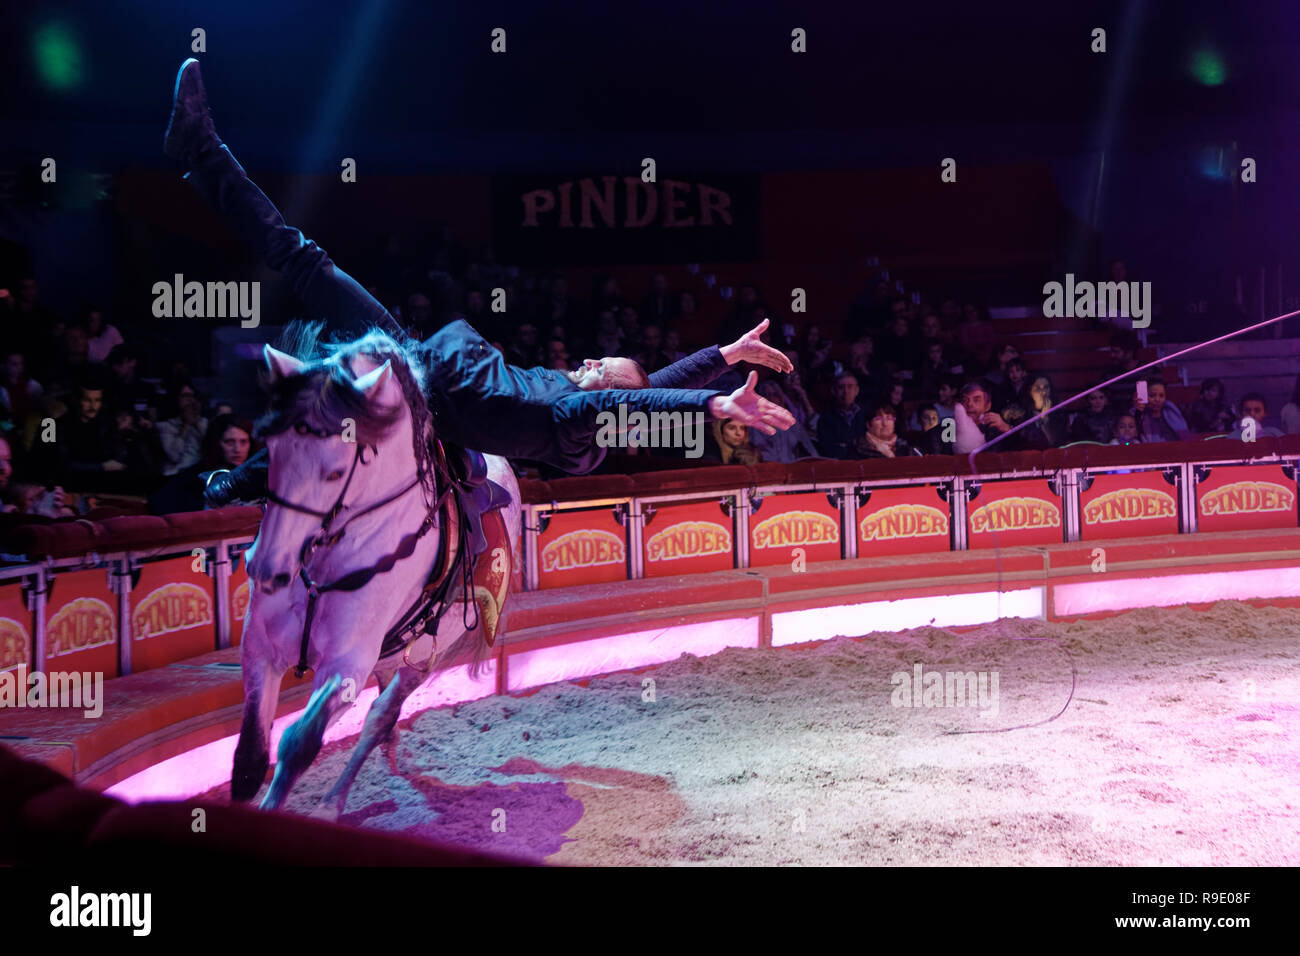 Paris, France. 22nd Dec, 2018. Equestrian acrobatics, Horses Back Men perform during the show of new stars of Cirque Pinder at the Pelouse de reuilly on December 22, 2018 in Paris, France. The show of emotions, dreams and shivers, lasts until February 3, 2019. Credit: Bernard Menigault/Alamy Live News - Stock Image